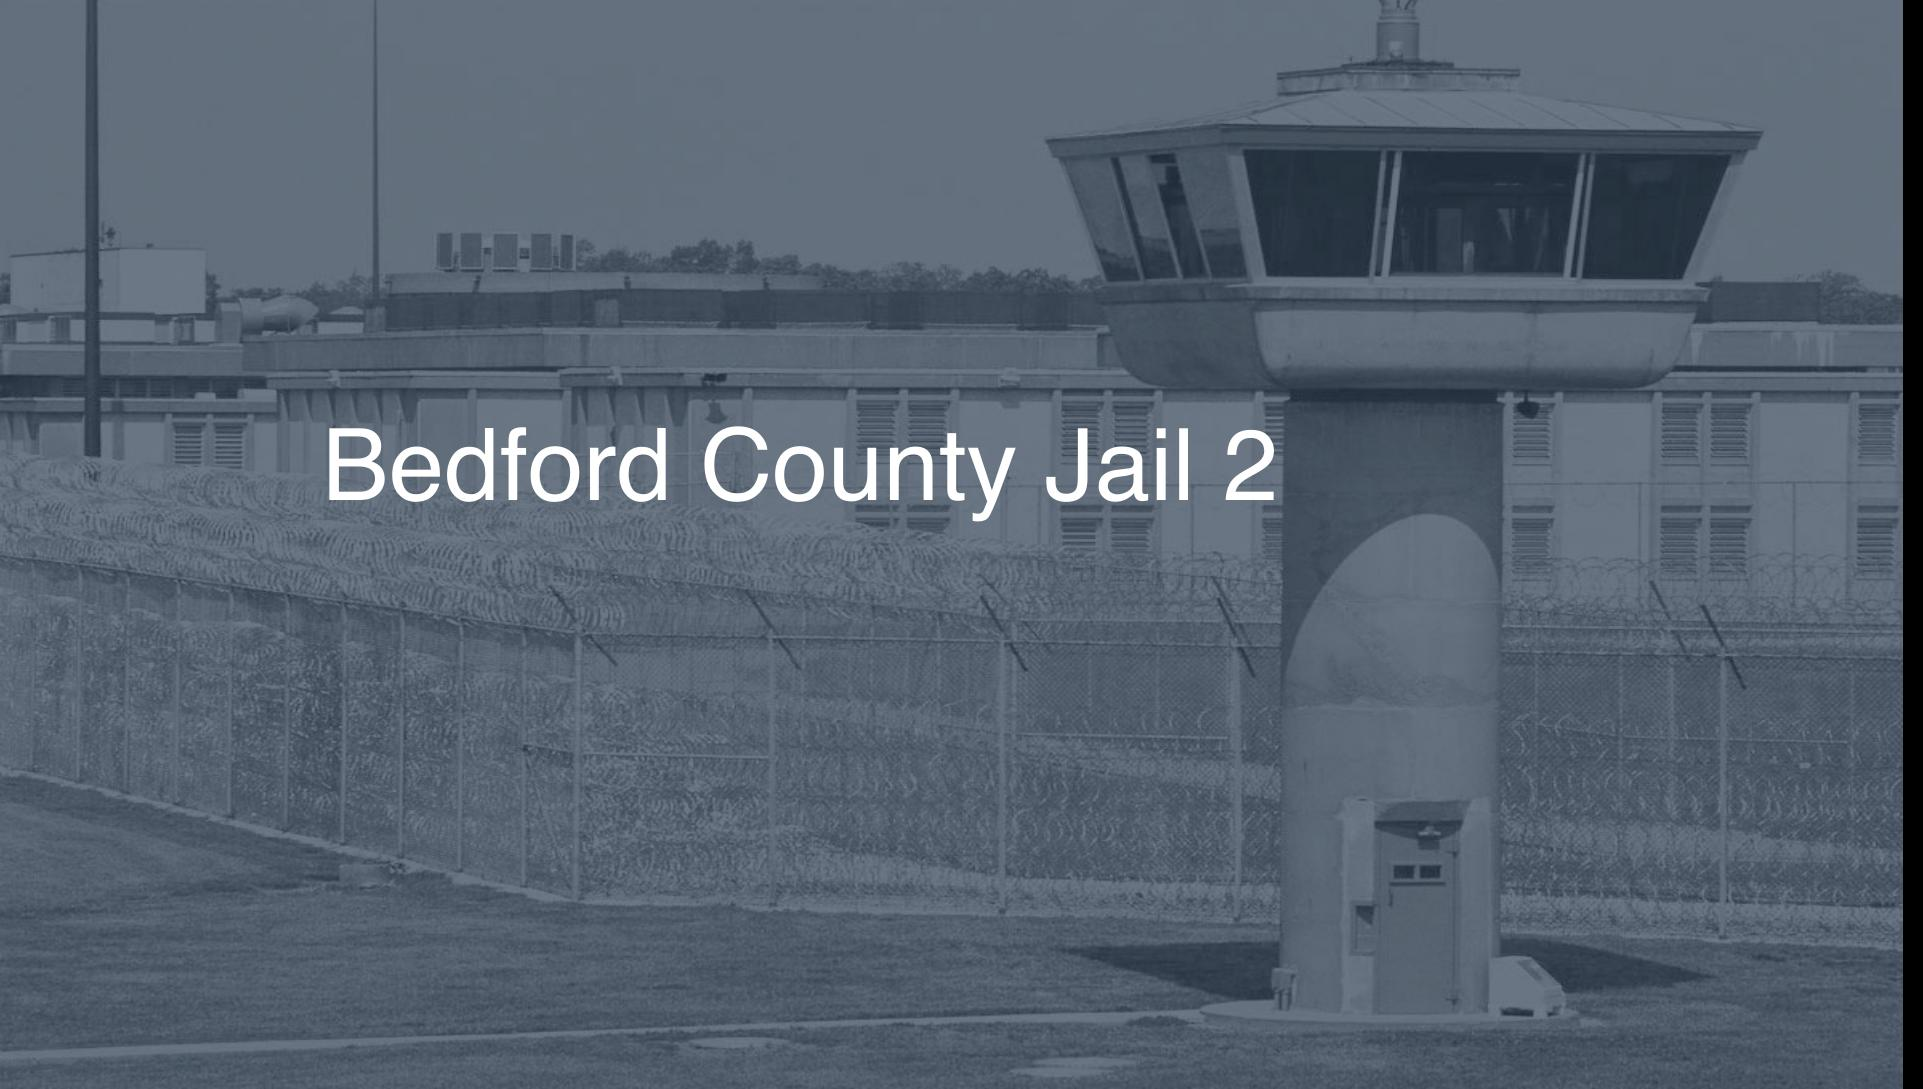 Bedford County Jail Inmate Search, Lookup & Services - Pigeonly